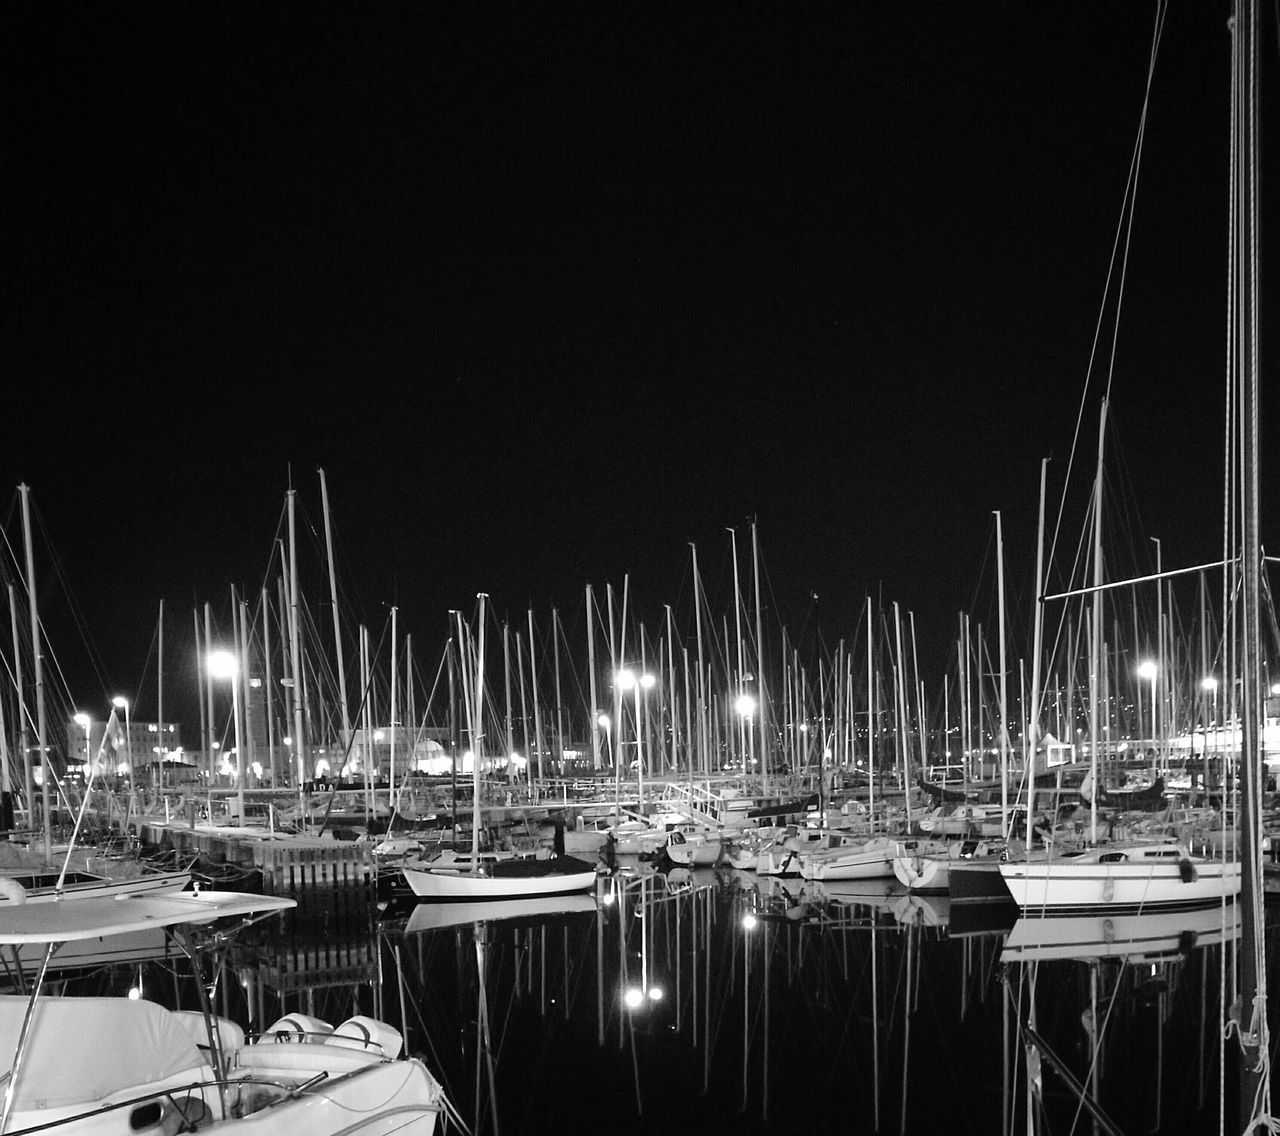 Masts Moored Water Nautical Vessel Tranquility Night No People Outdoors Harbor Sailboat Yacht Yachting